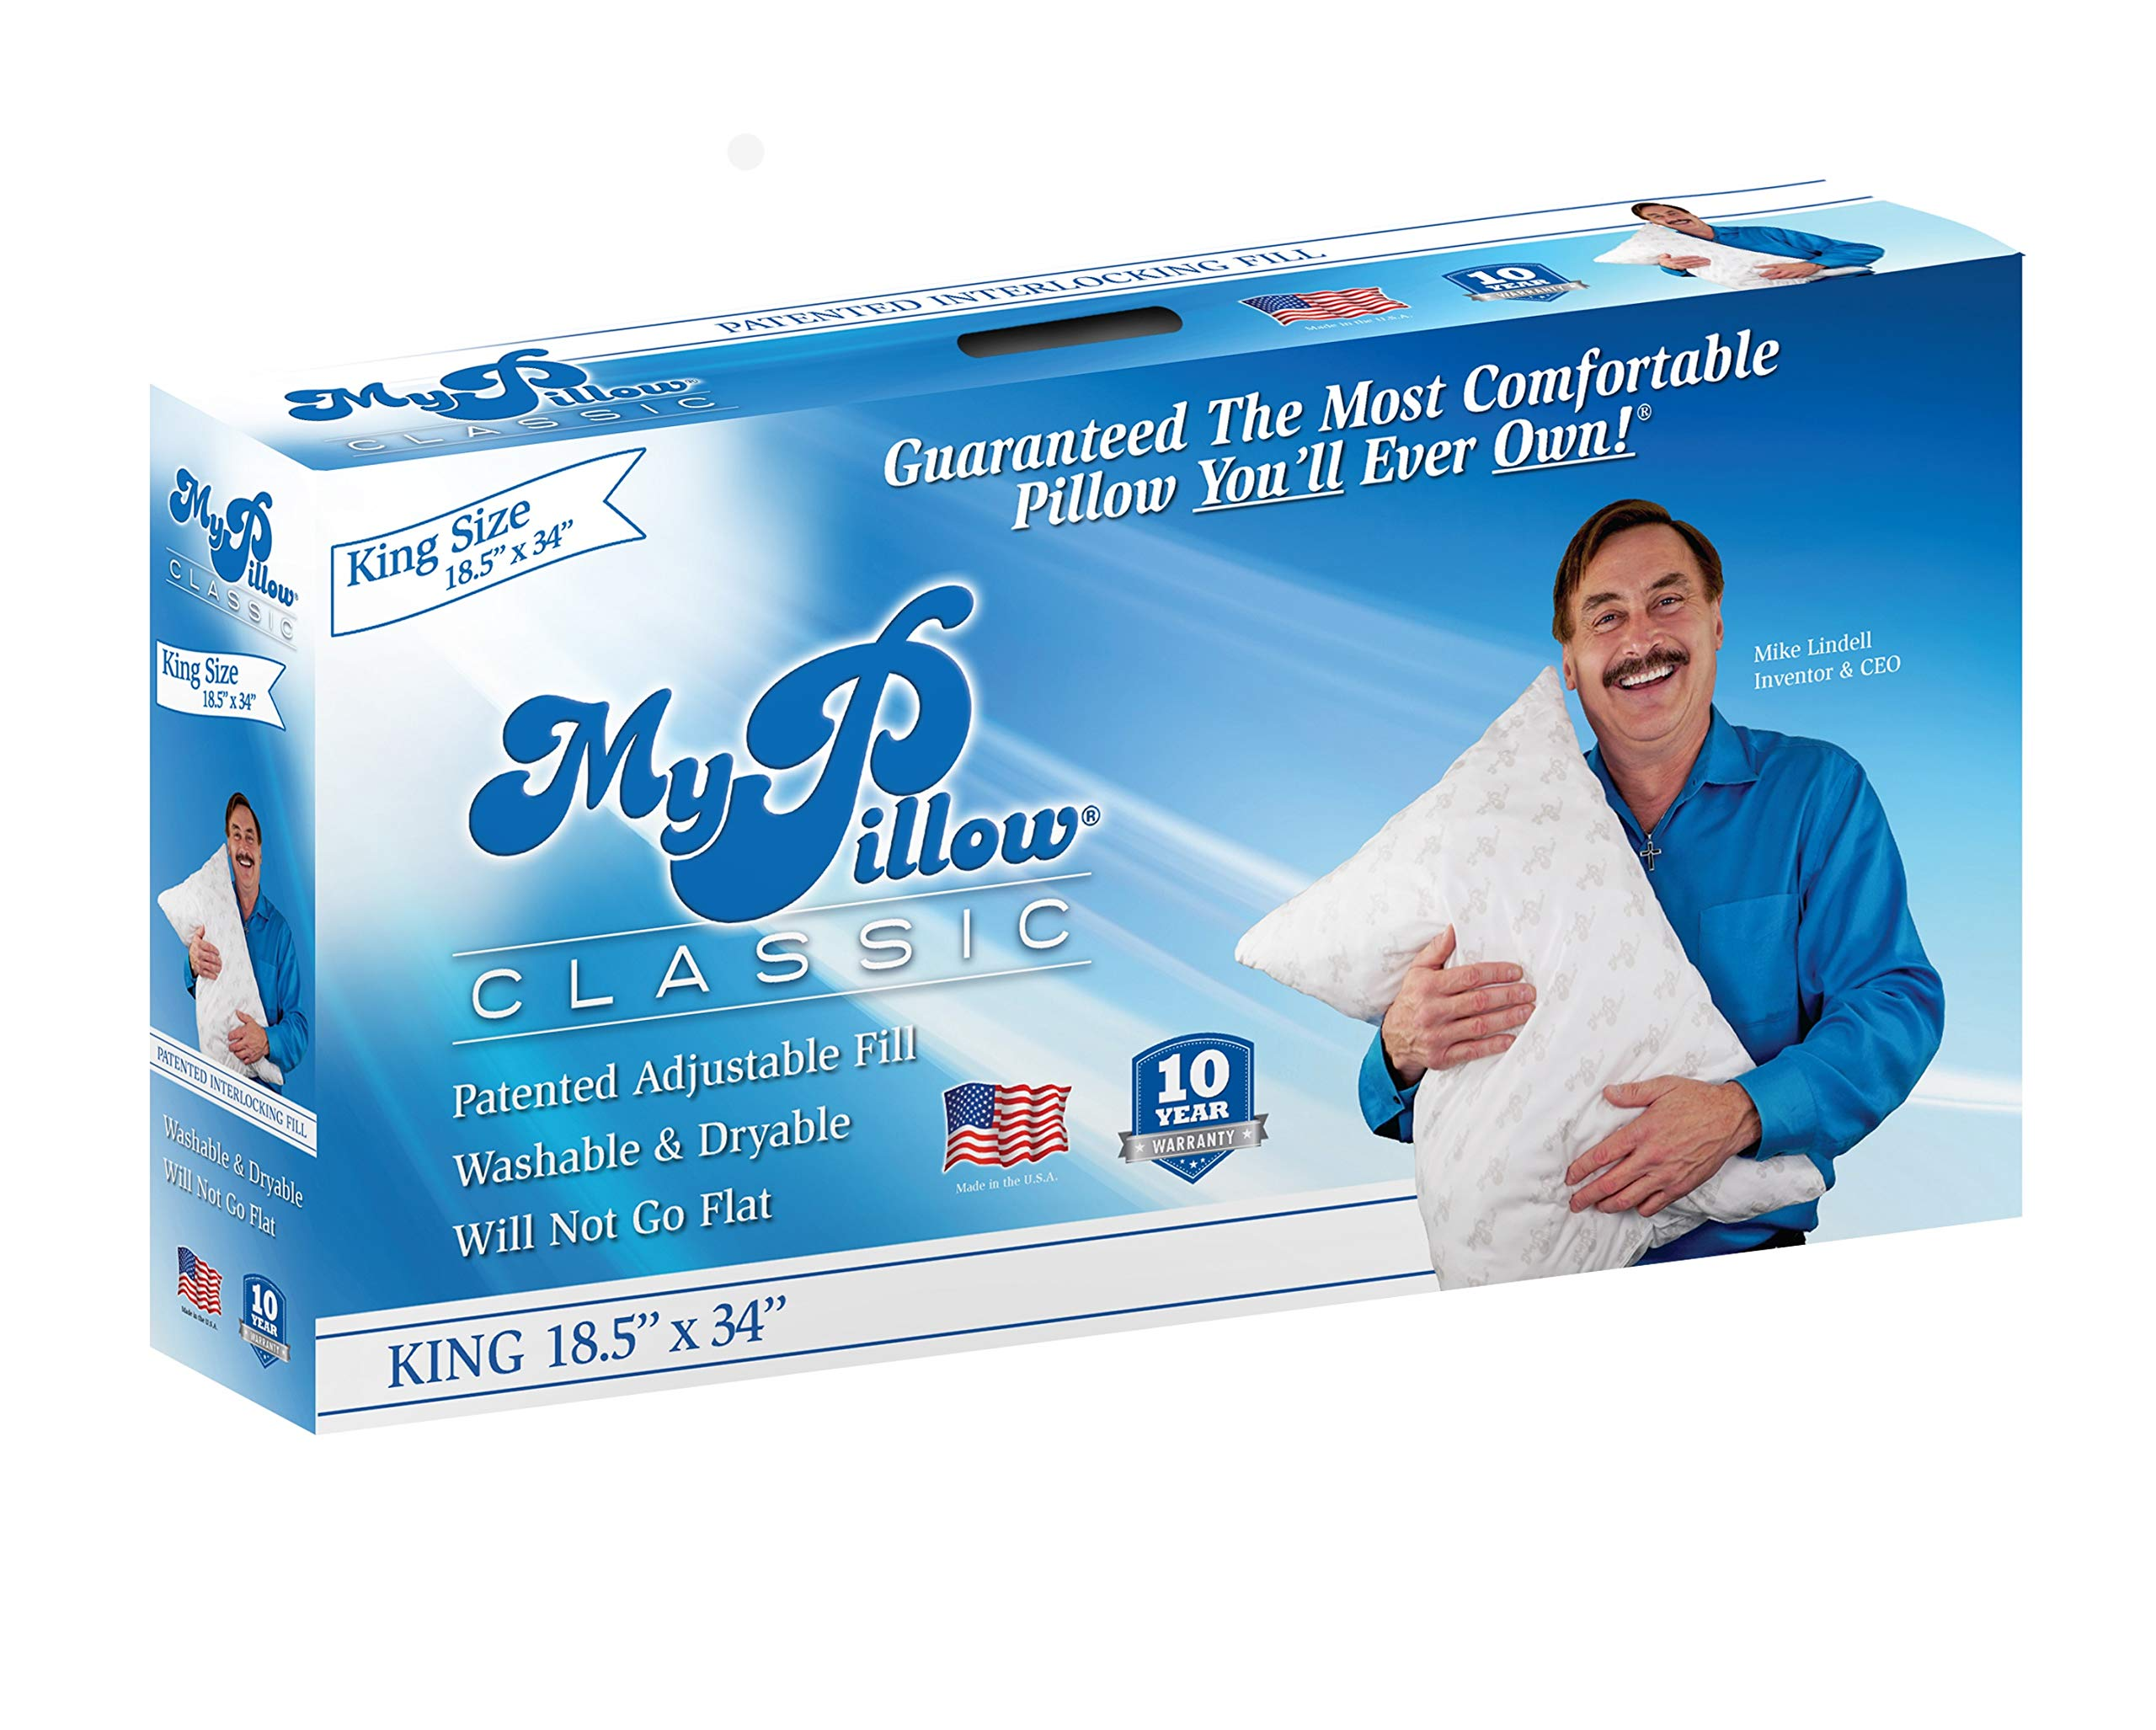 MyPillow Classic Series [King, Medium Fill] Now Available in 4 Loft Levels